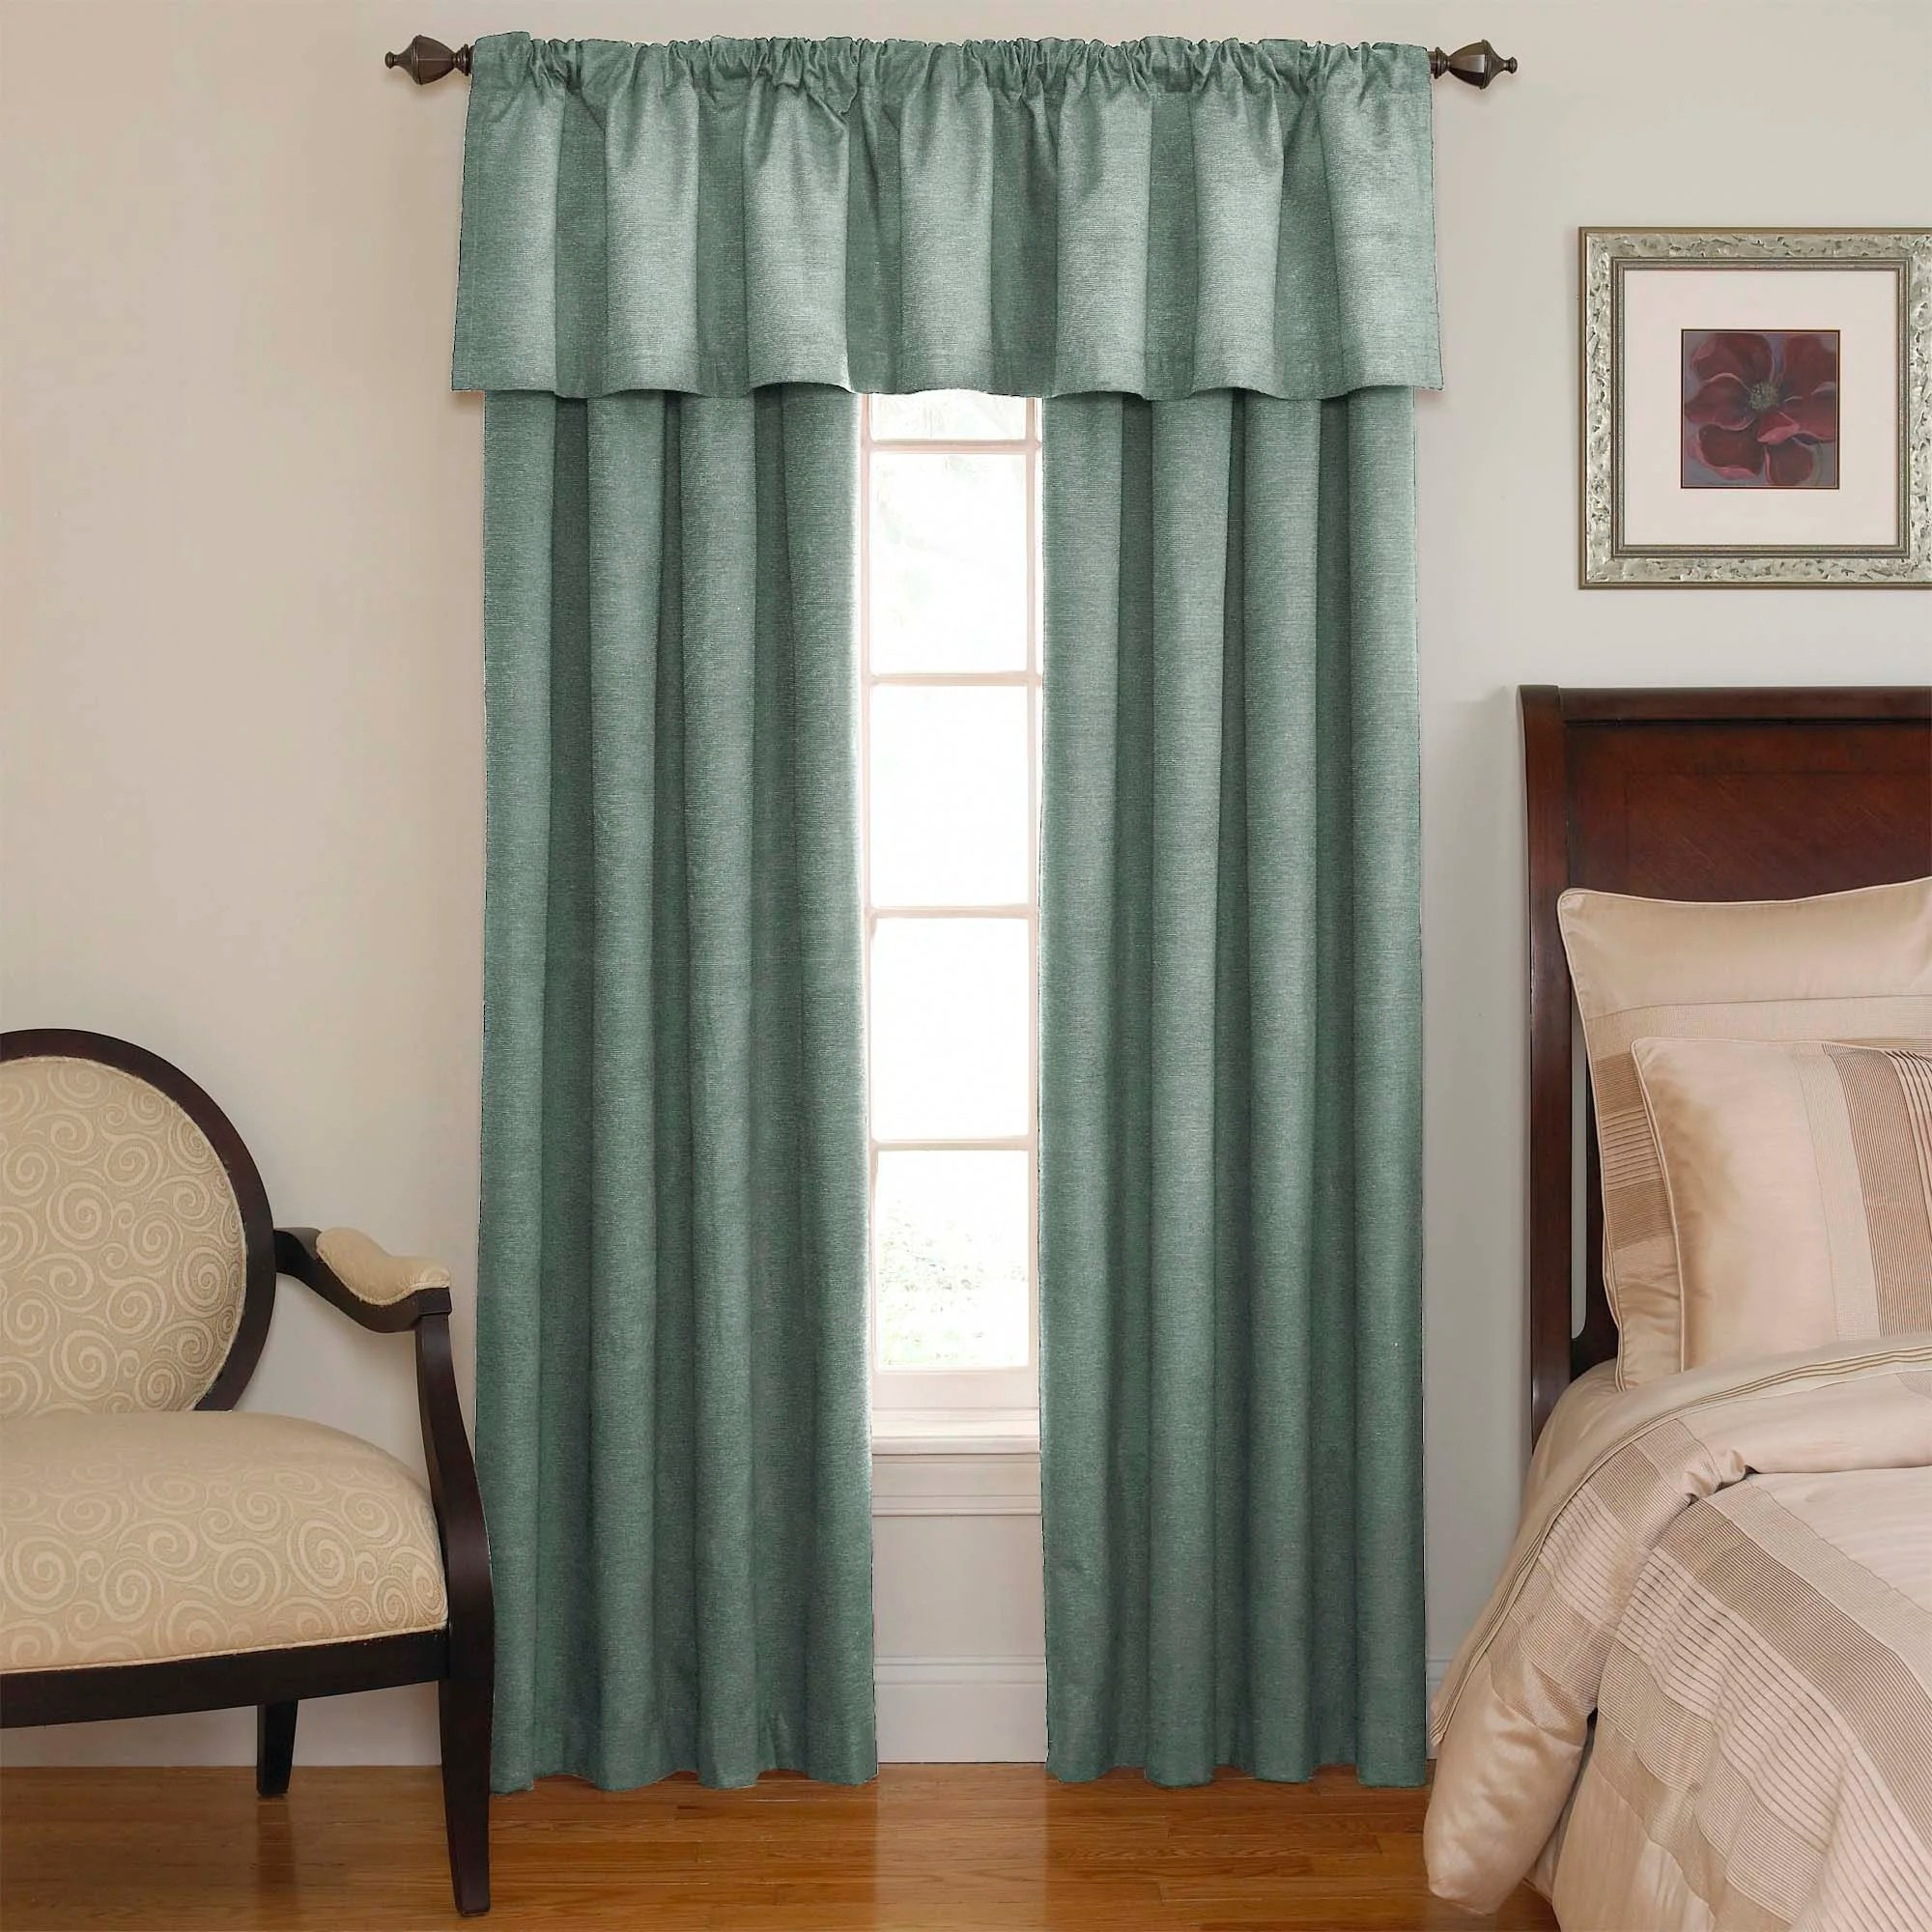 Curtain Deals Soundproof Curtains Deals On 1001 Blocks